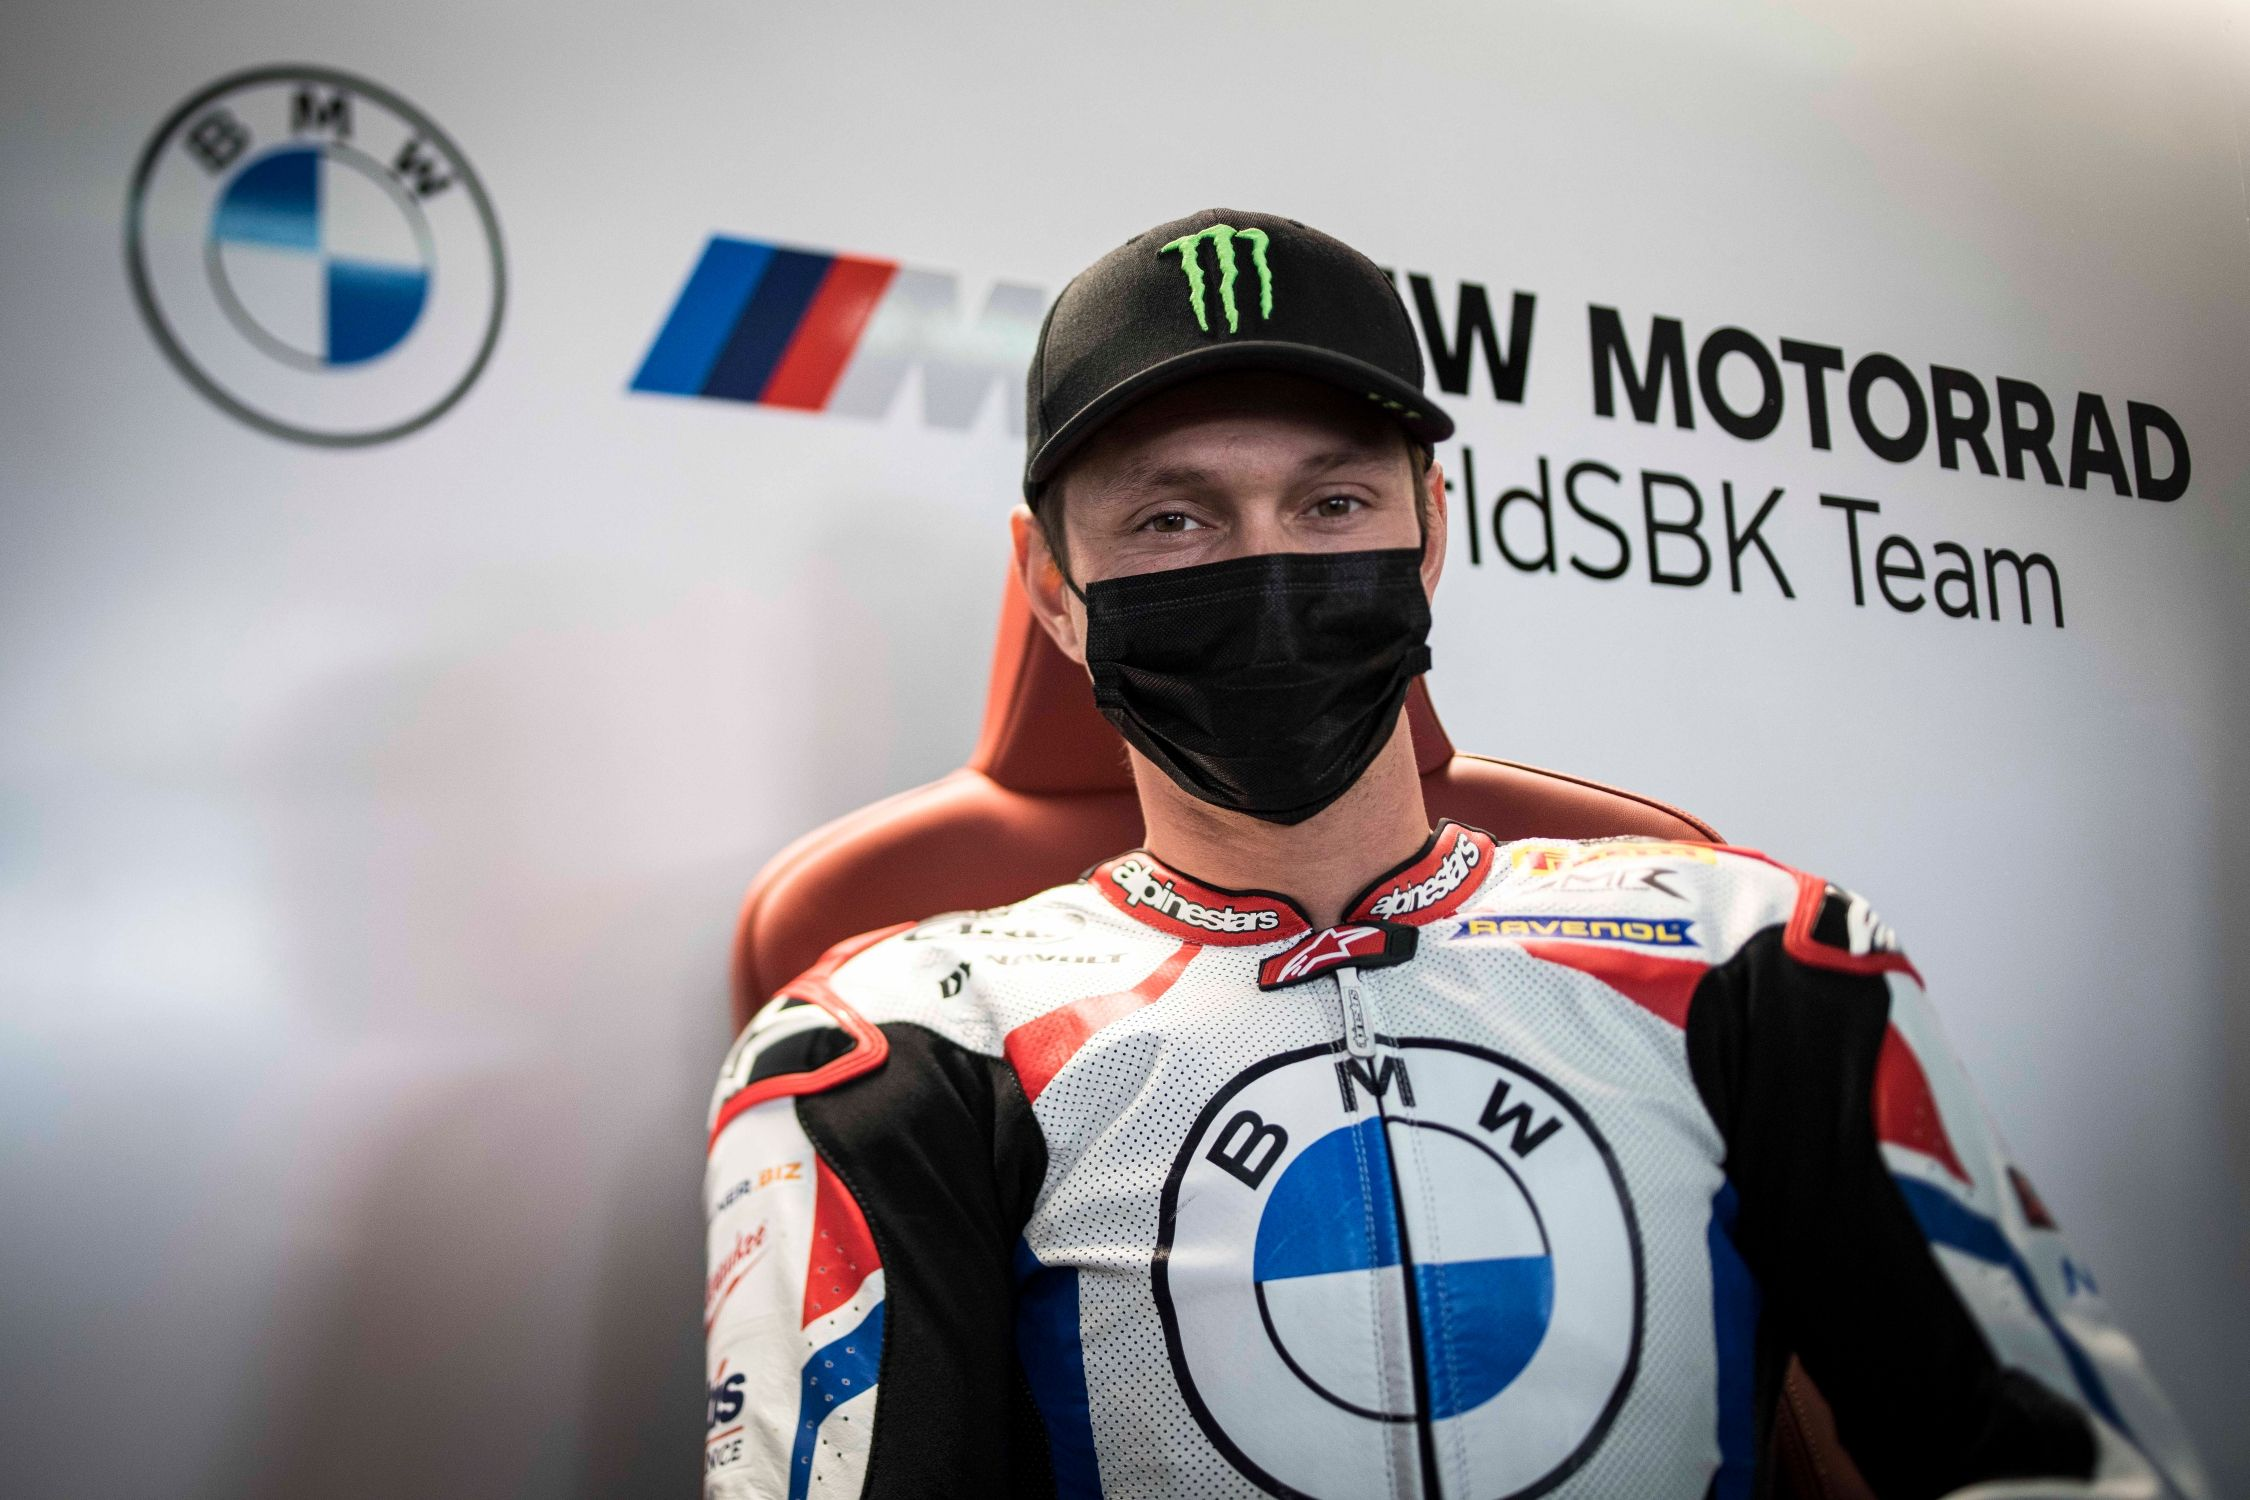 WorldSBK heads to Navarra for the first time